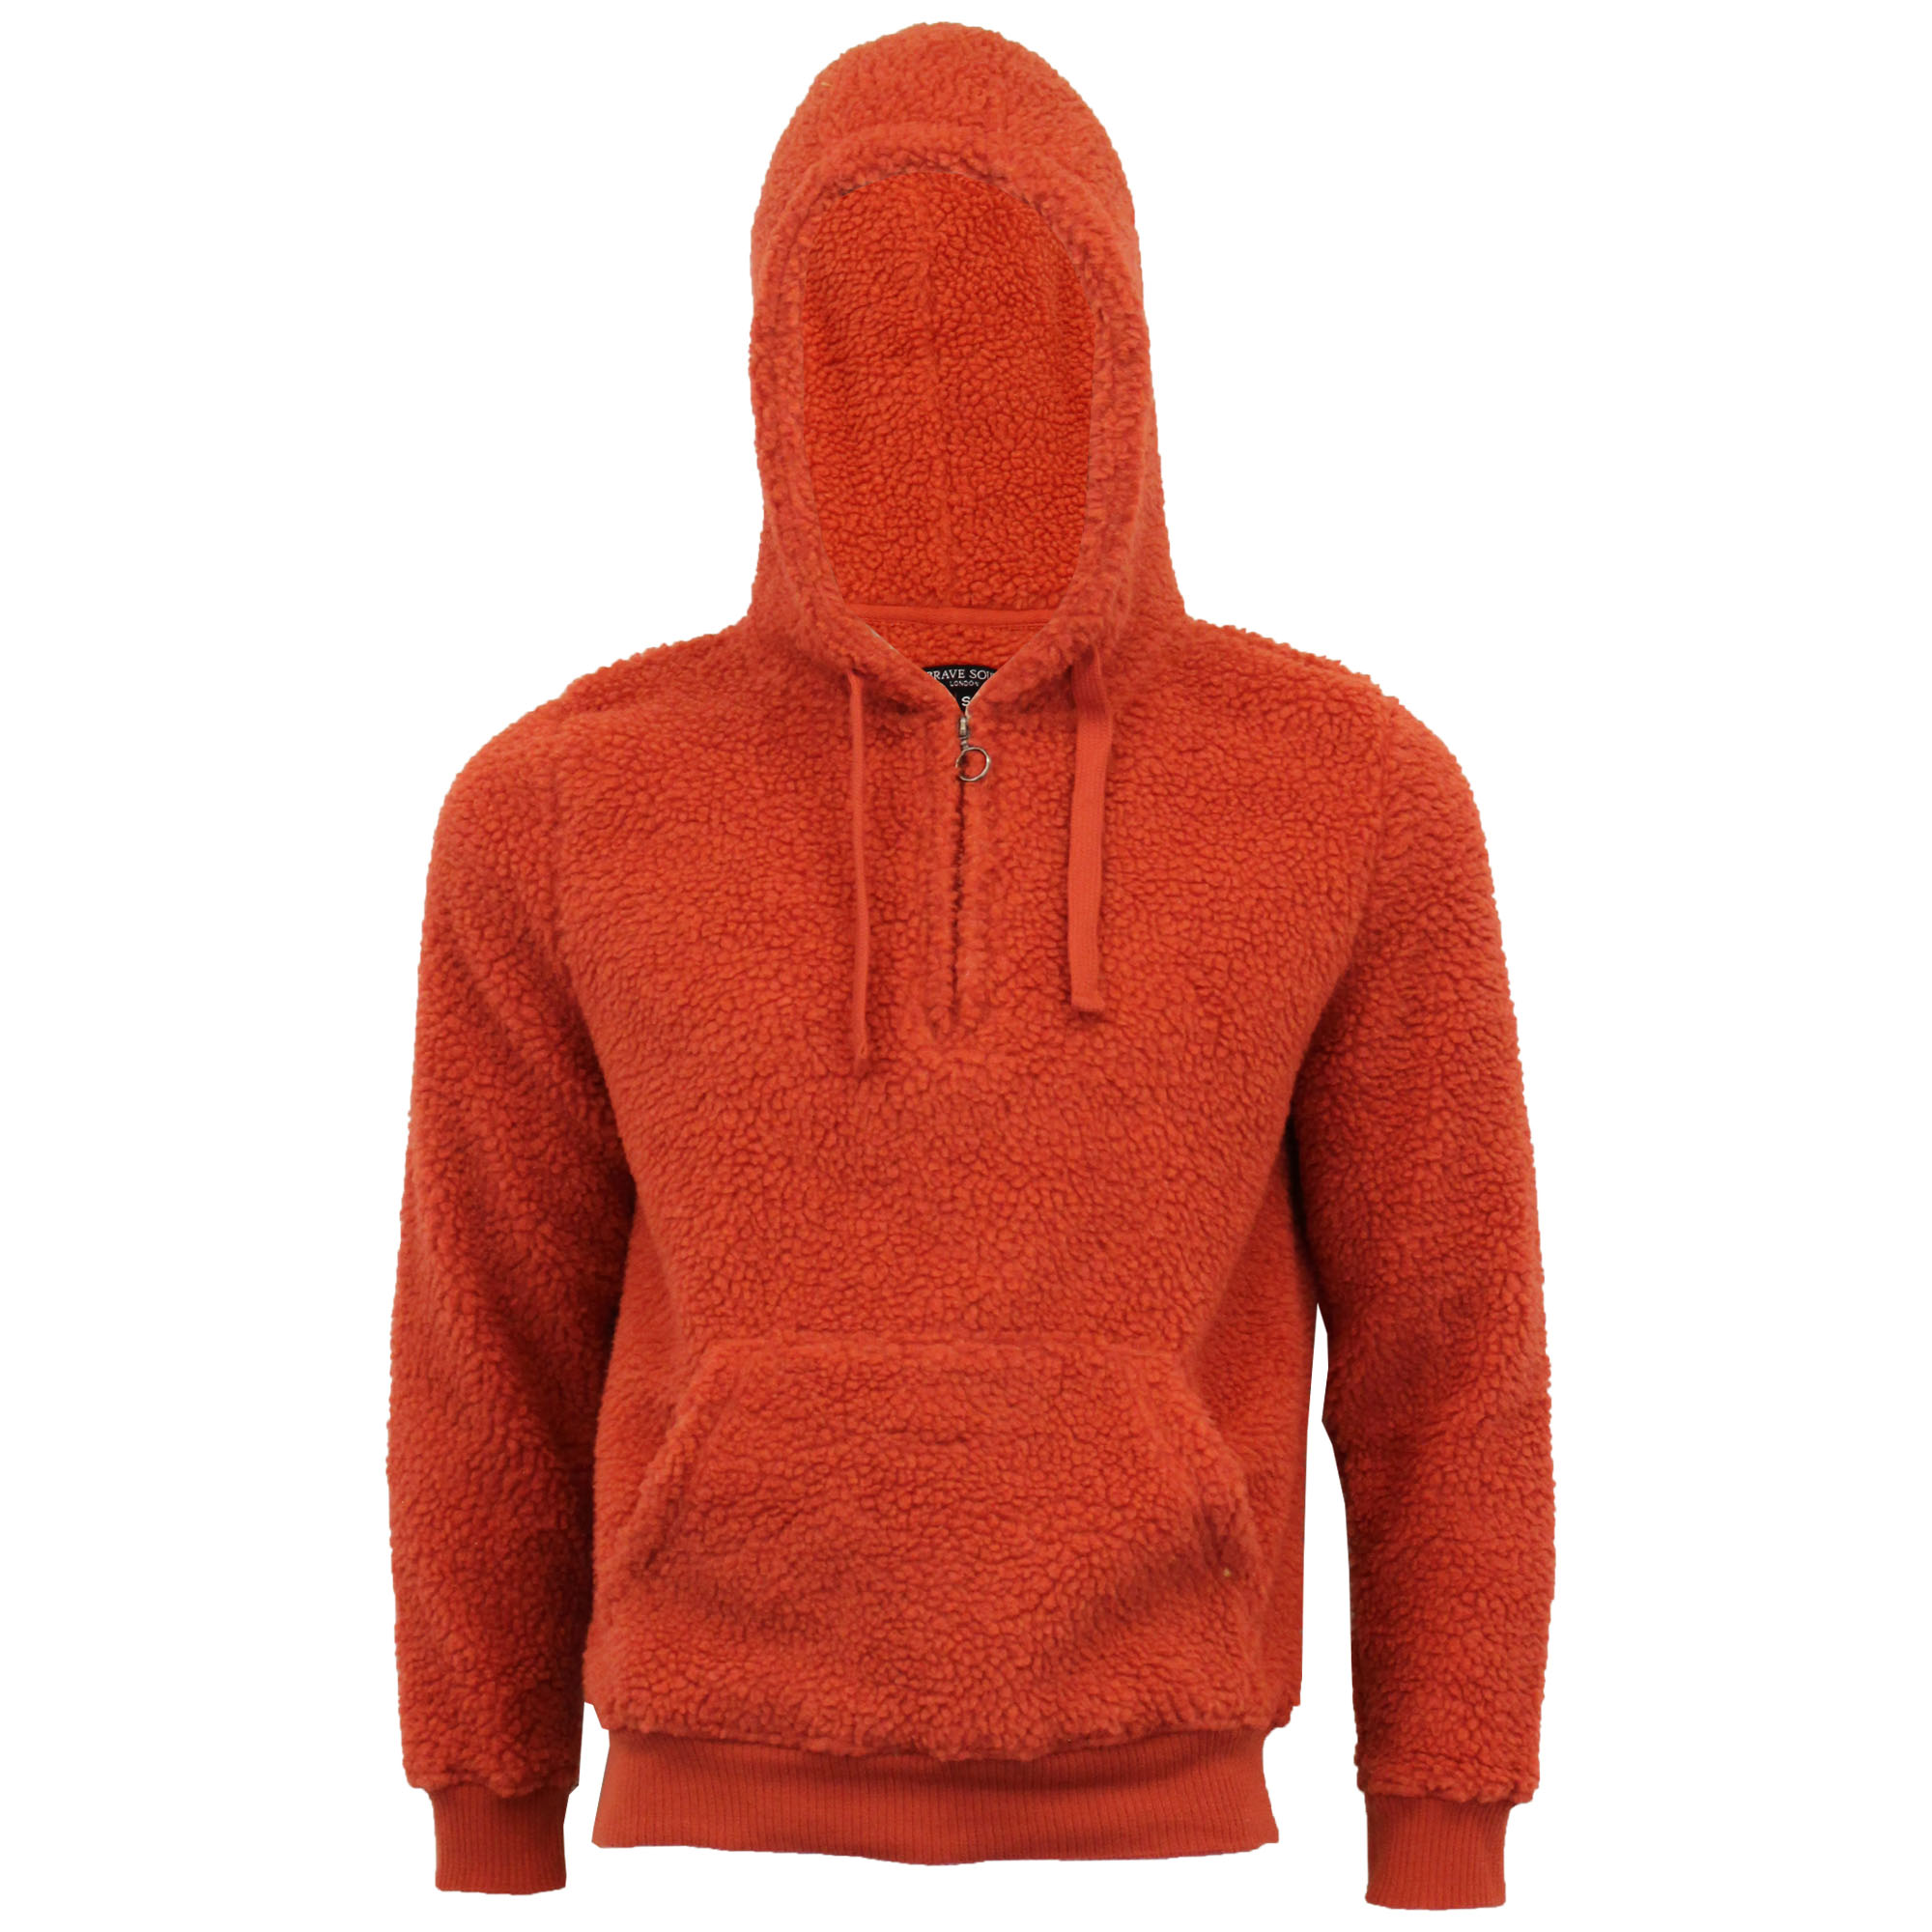 Mens-Borg-Sherpa-Fleece-Sweatshirt-Brave-Soul-DAIM-Over-The-Head-Hooded-Top-Warm thumbnail 14